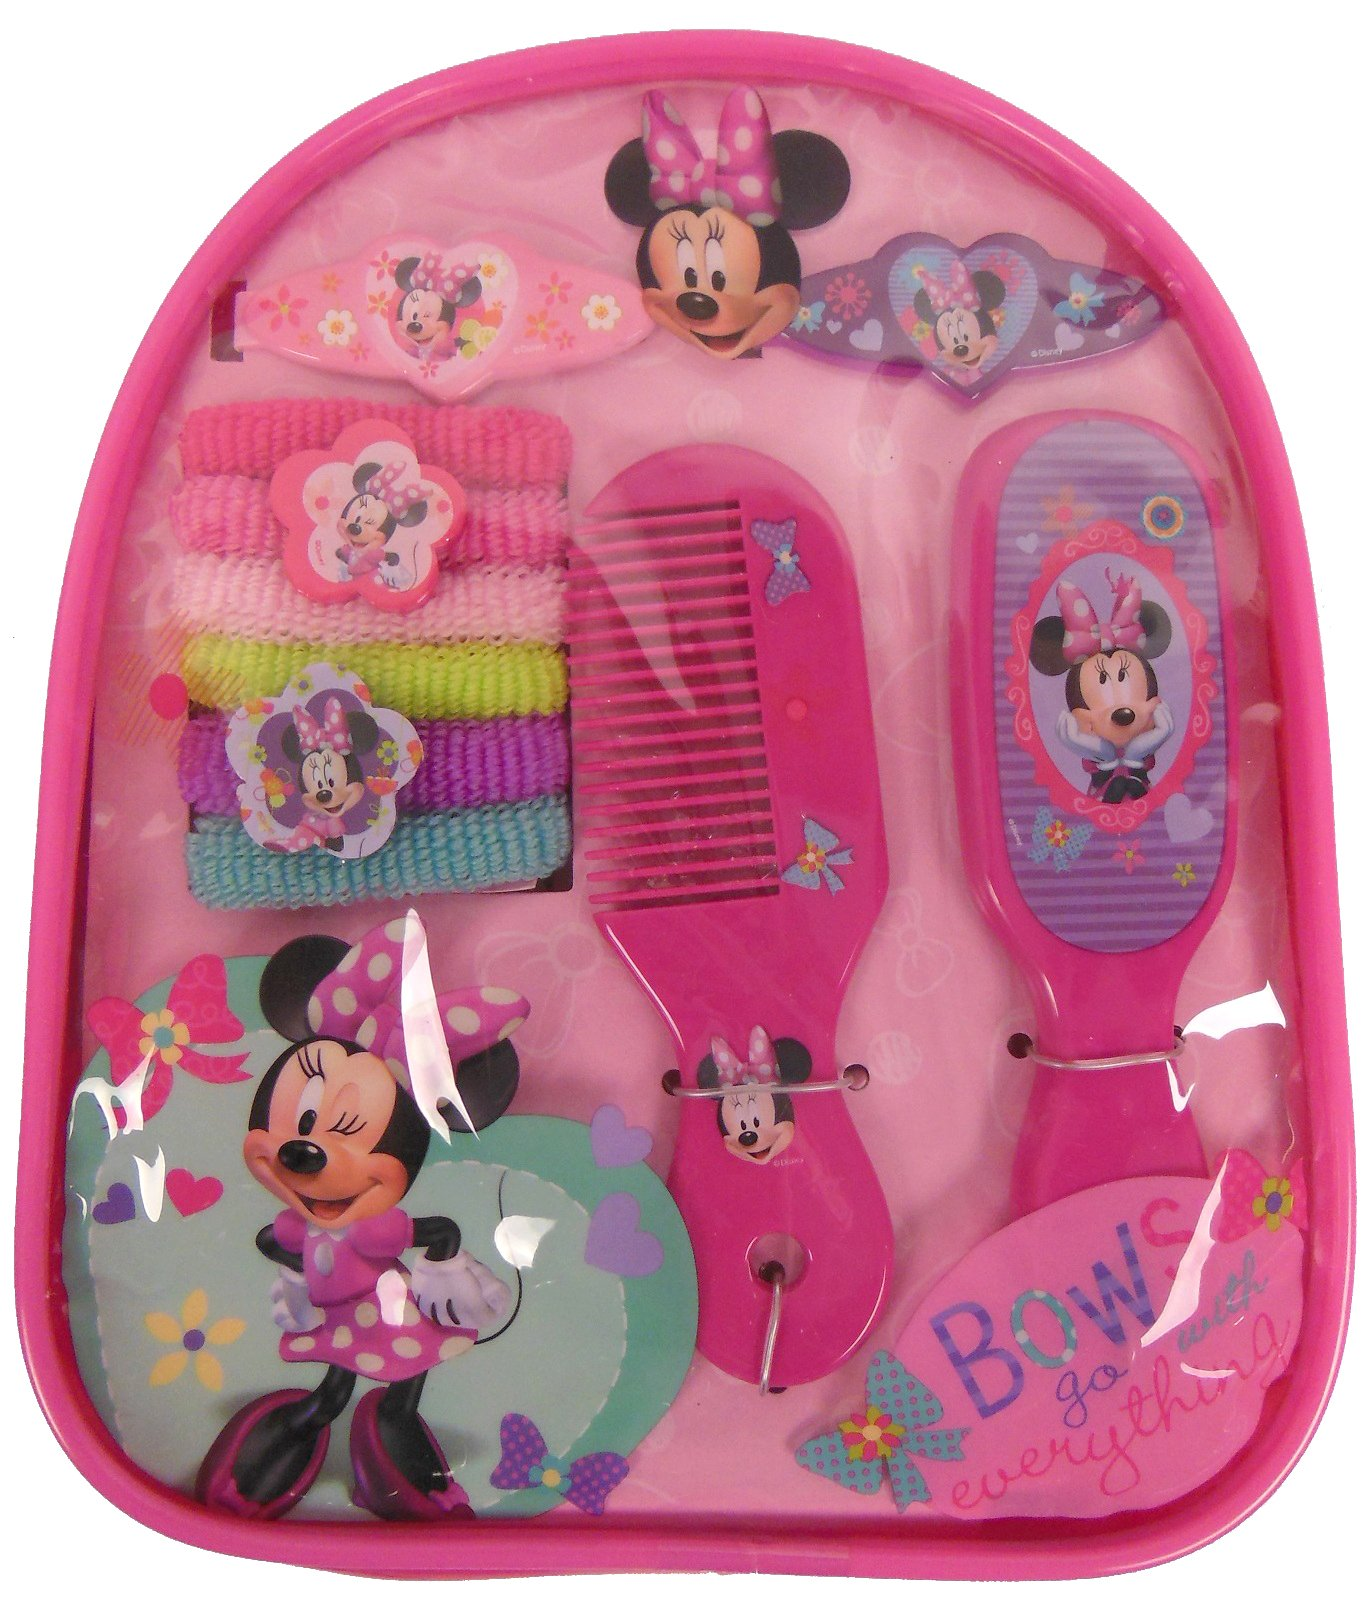 Disney Junior Minnie Mouse Bowtique Hair Accessory Gift Set (MM402)